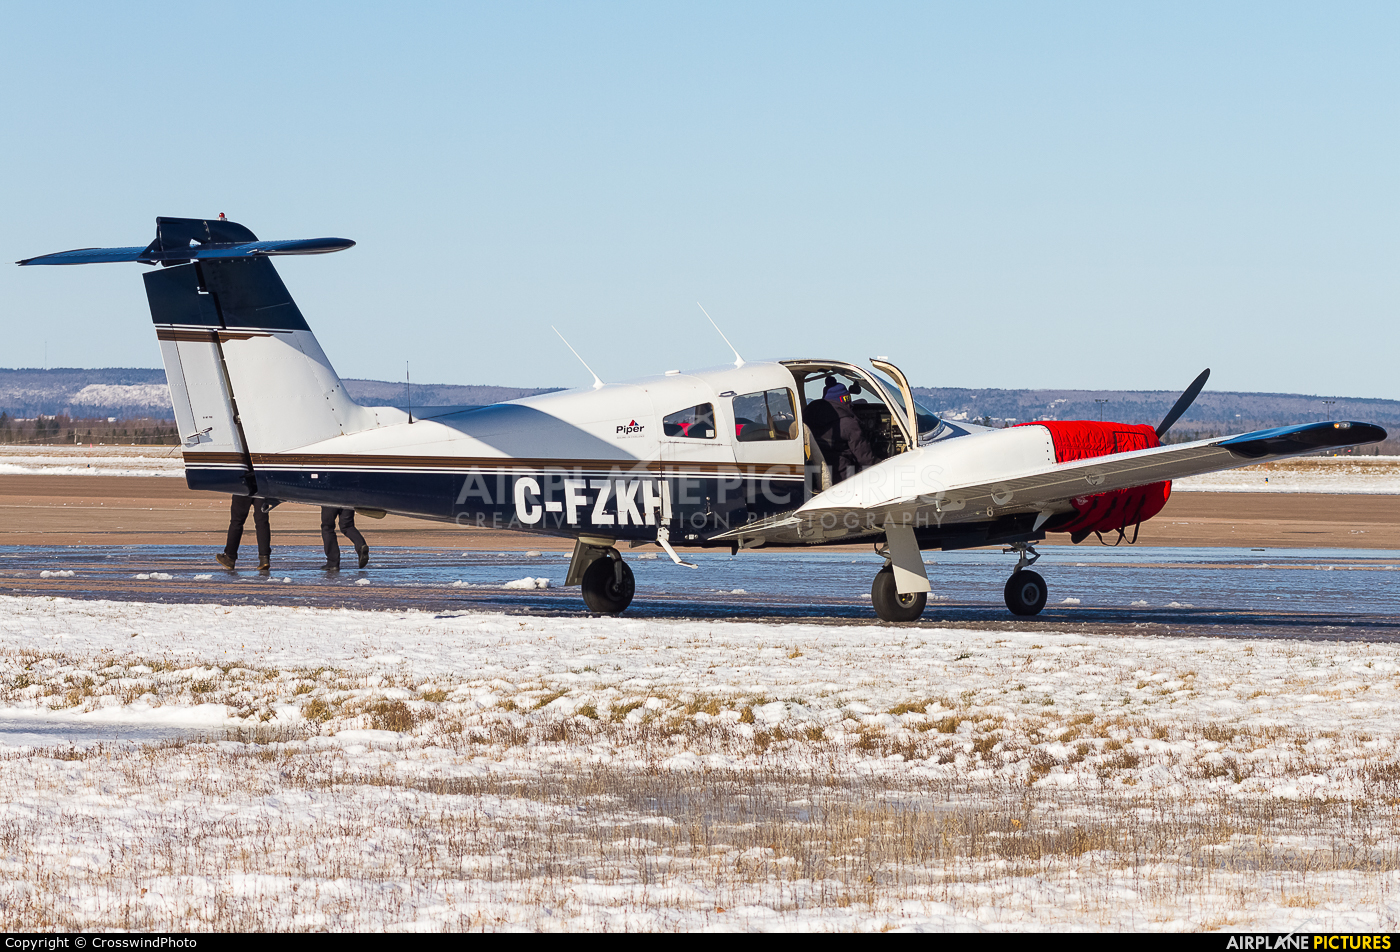 Private C-FZKH aircraft at greater Moncton International